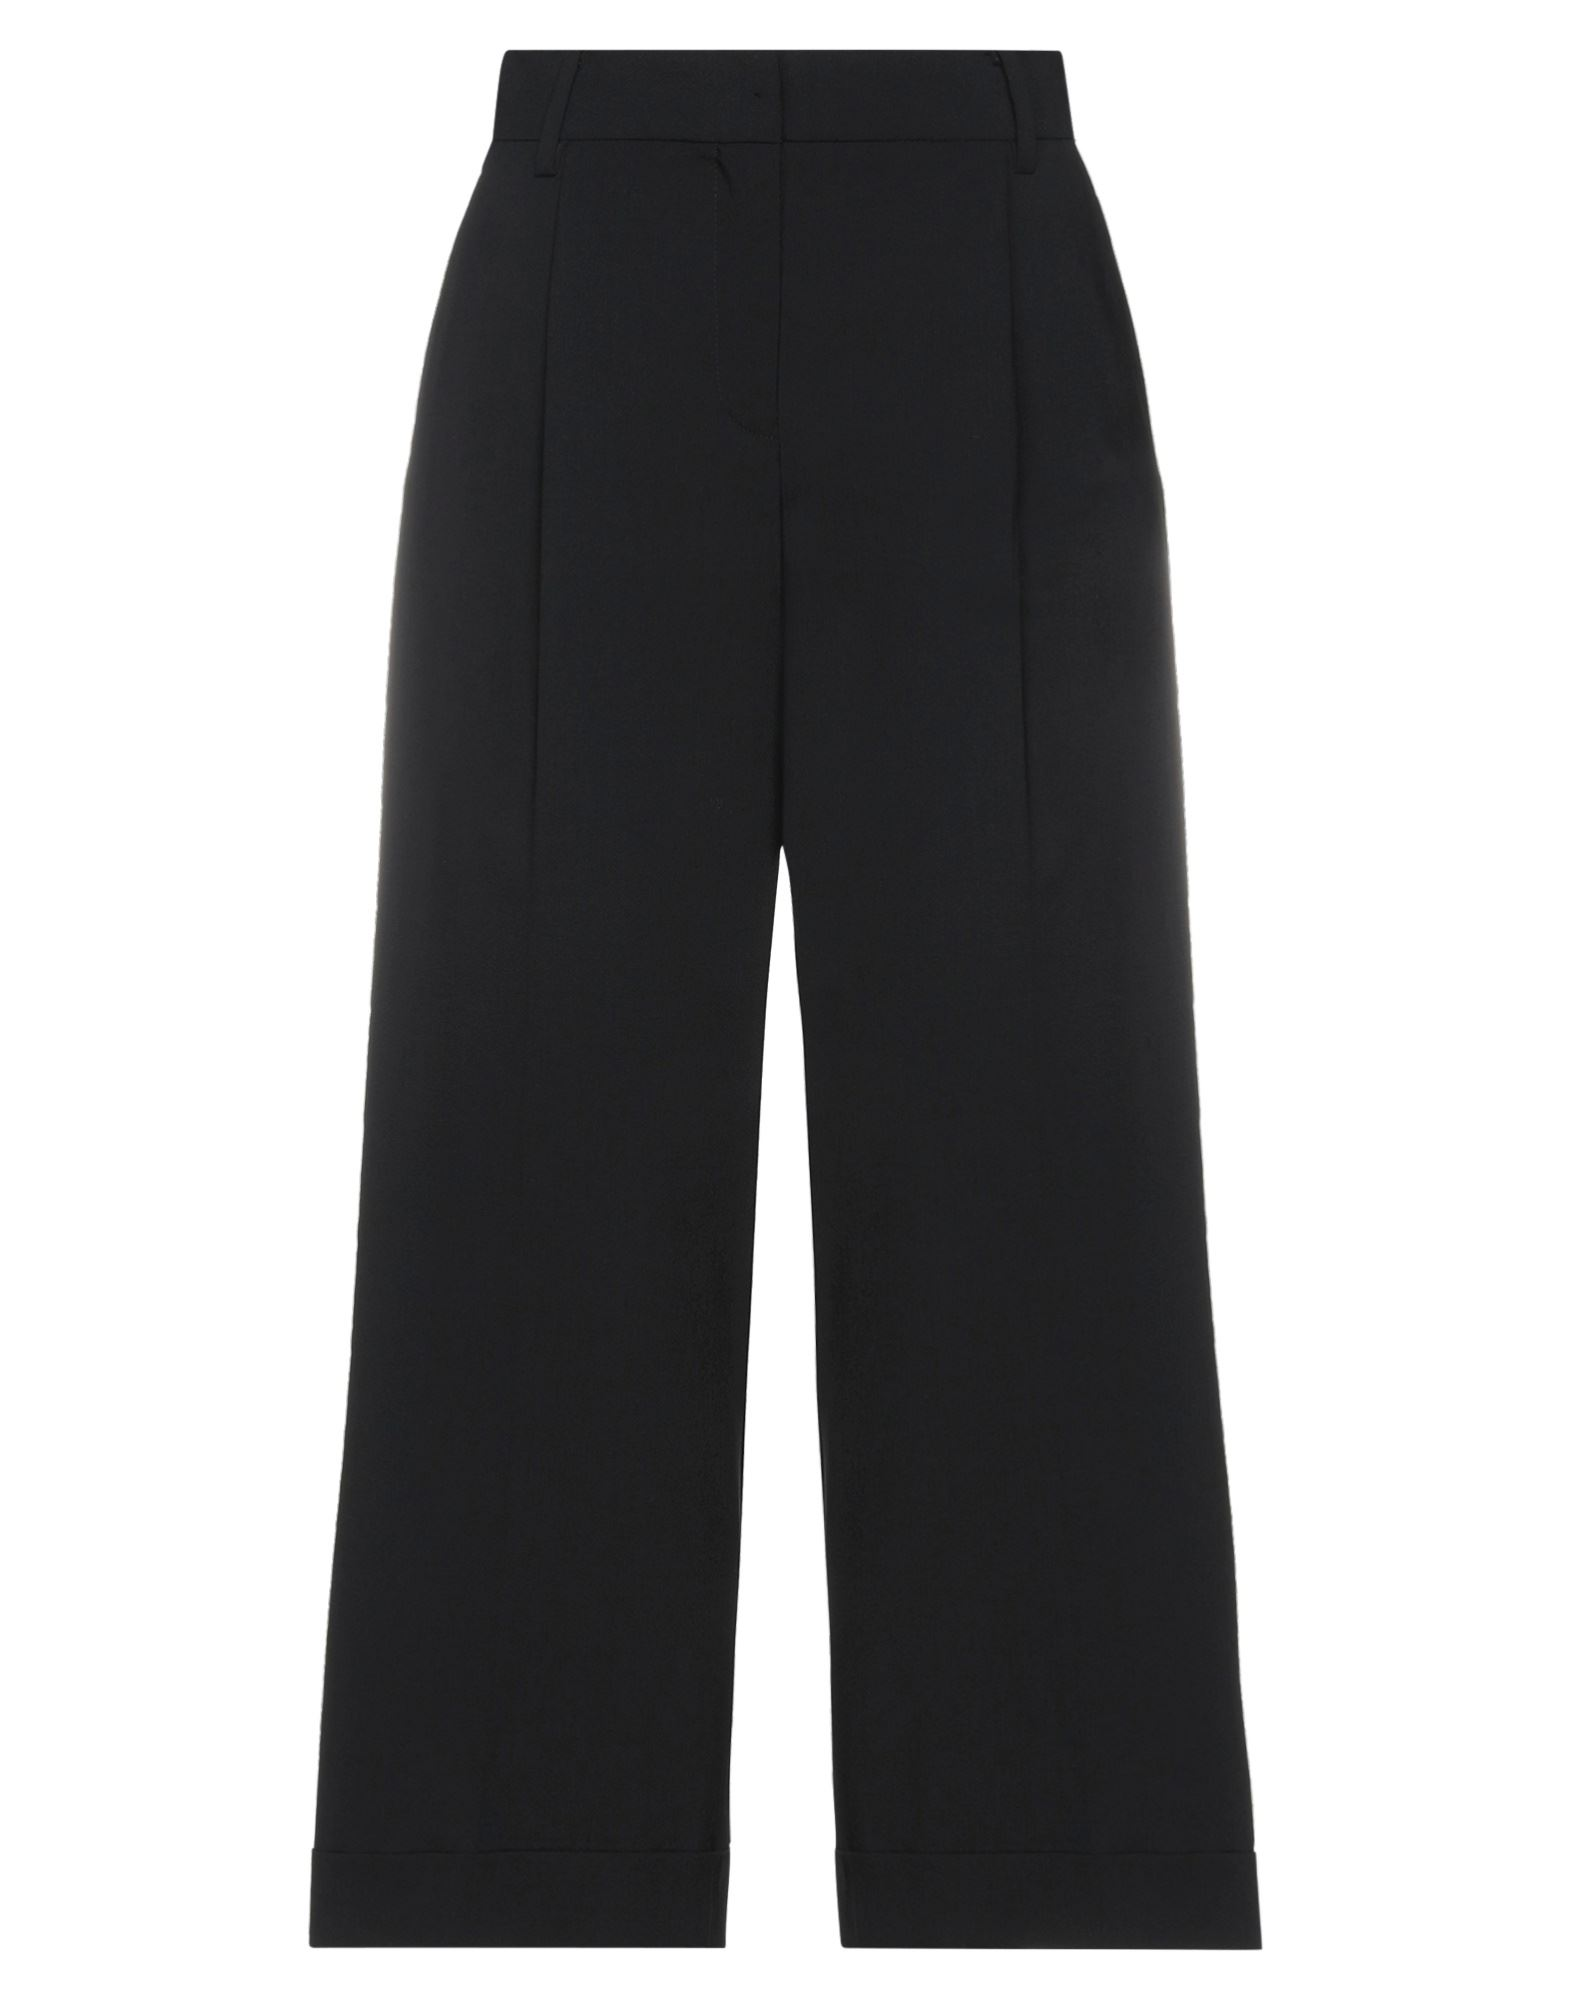 Les Copains Casual Pants In Black